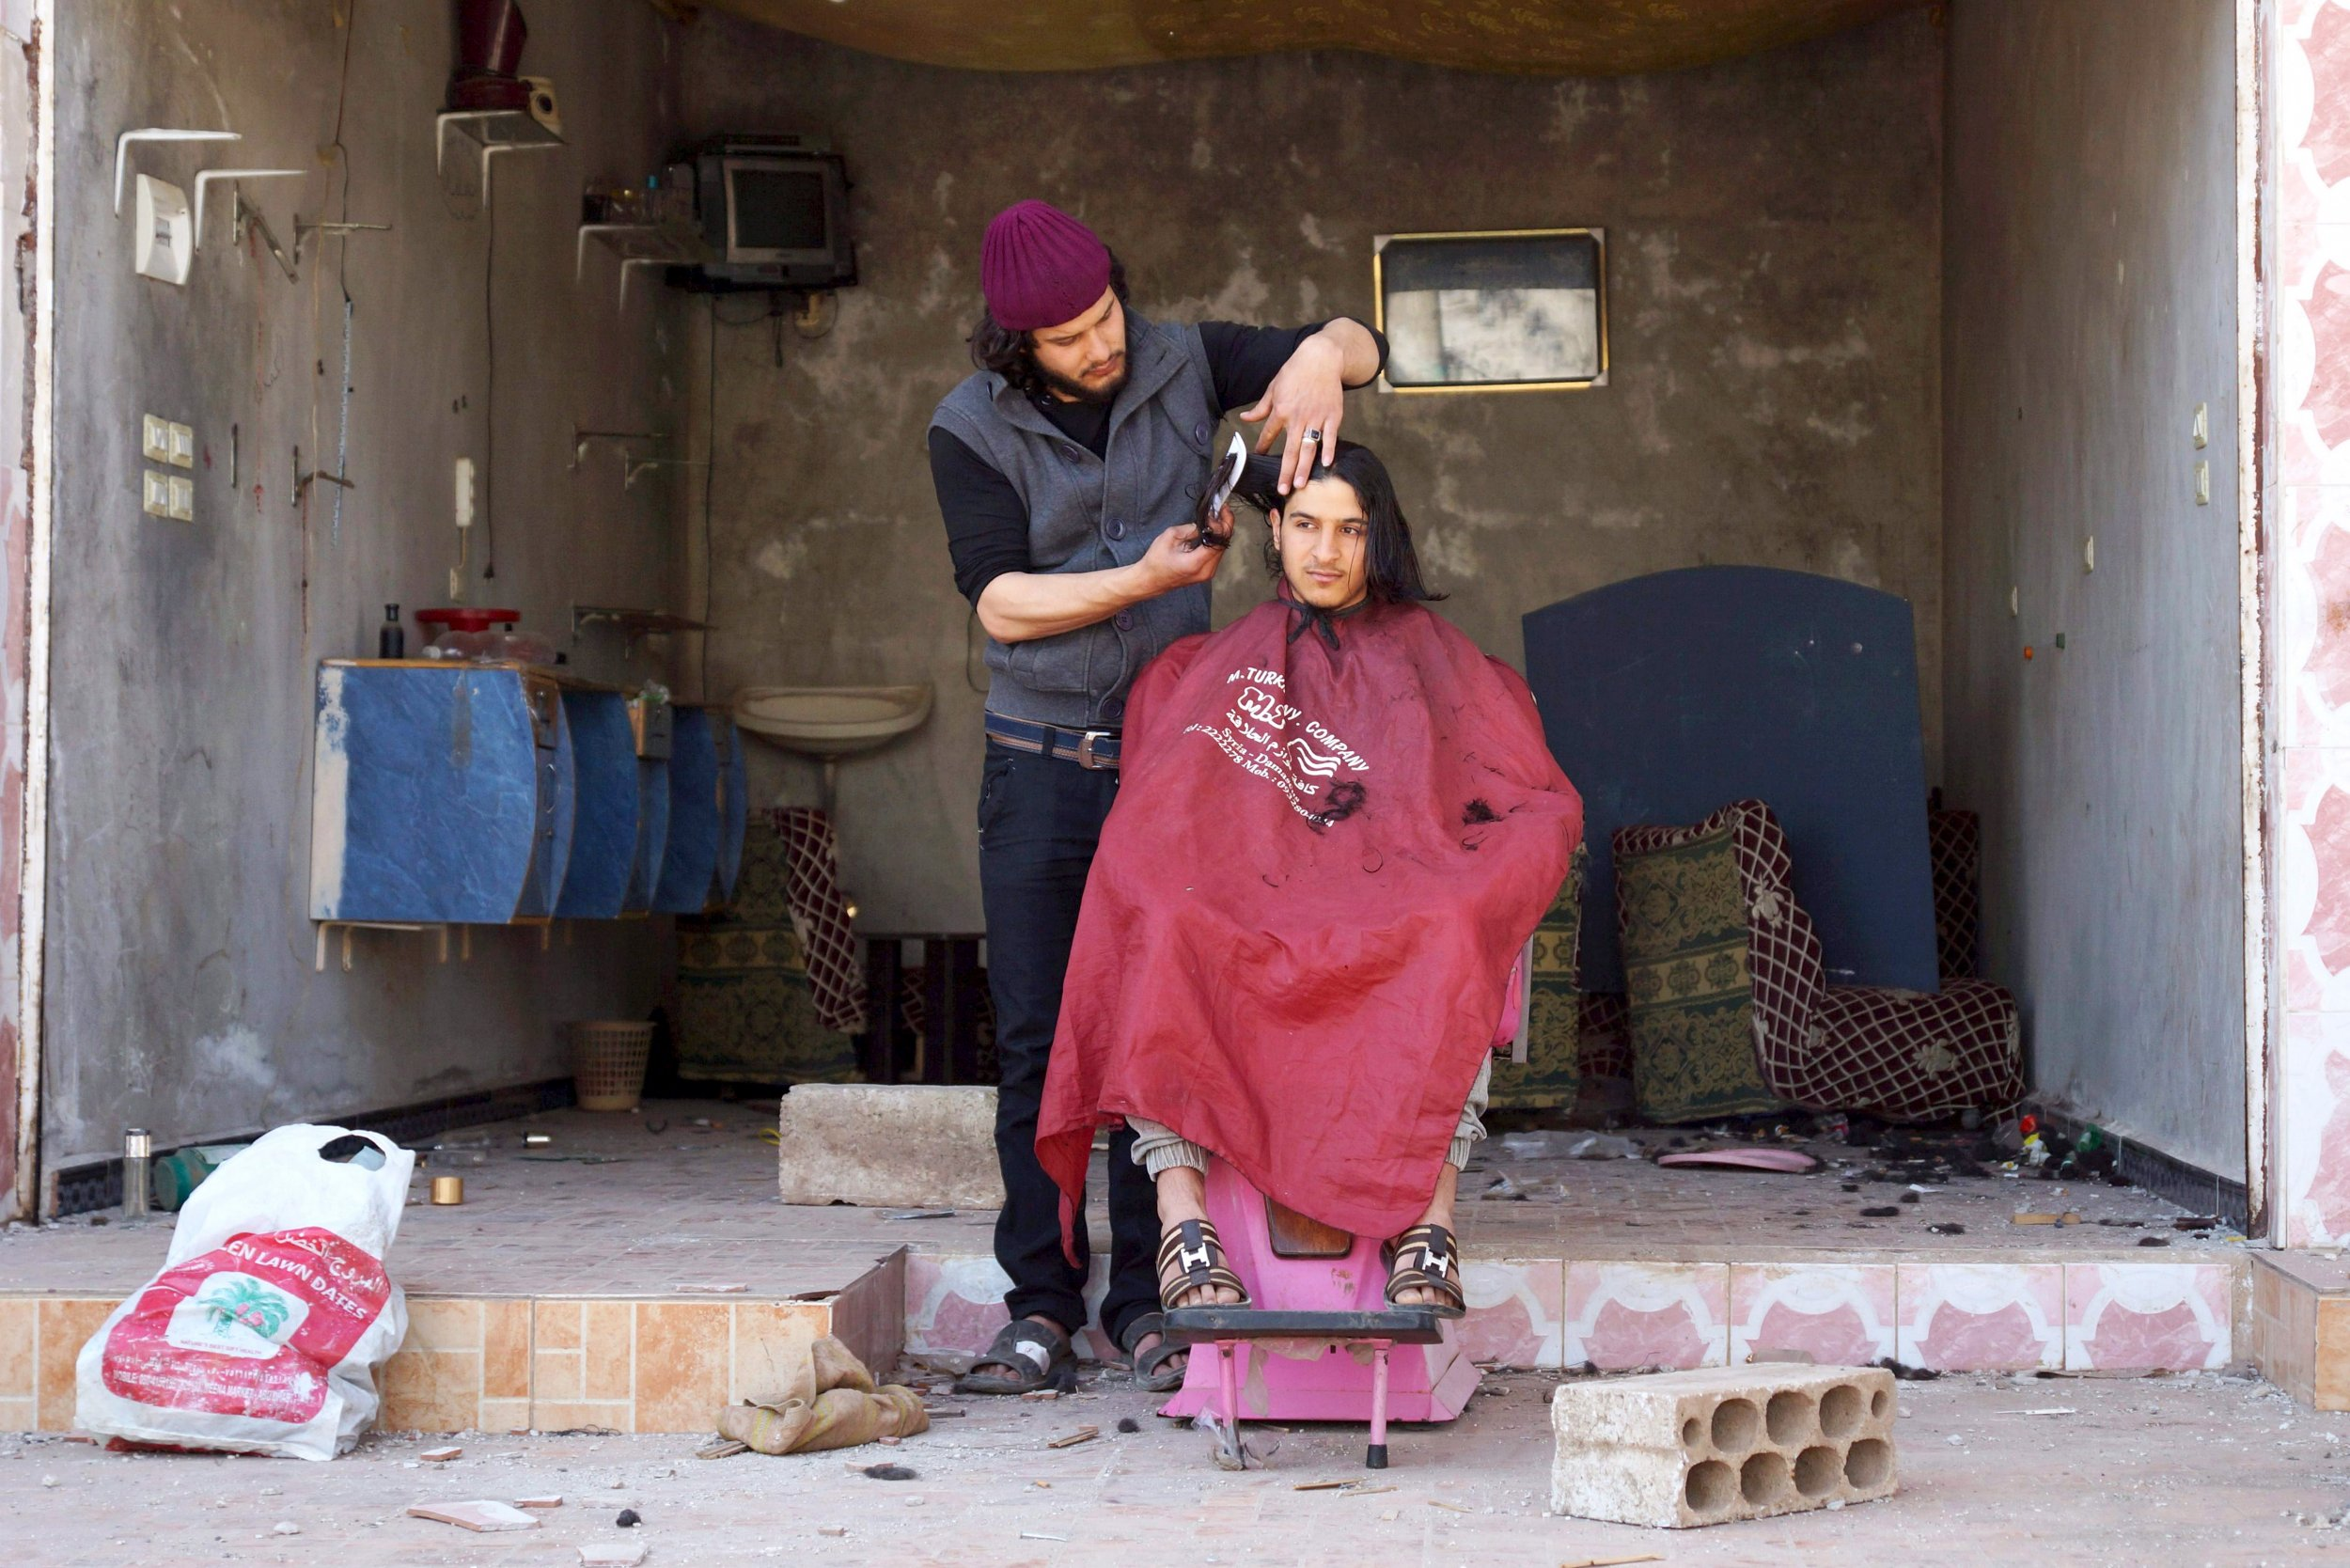 05_01_ISIS_Barber_01